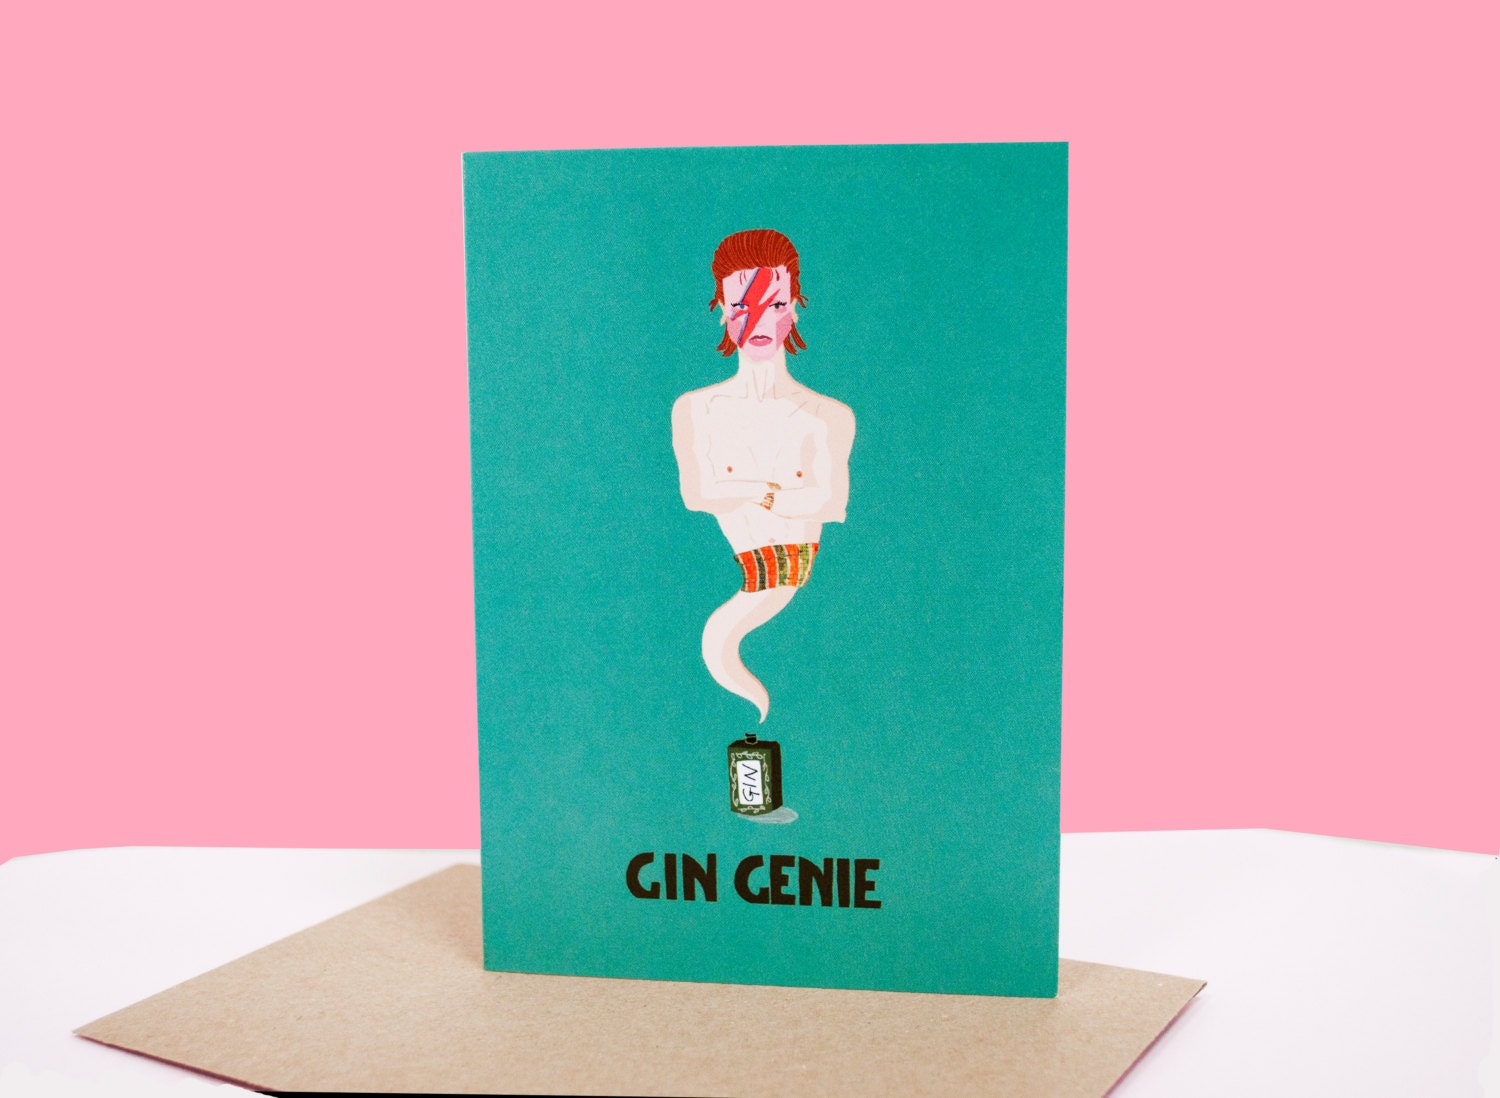 Gin genie greeting card birthday card puns humour zoom kristyandbryce Gallery